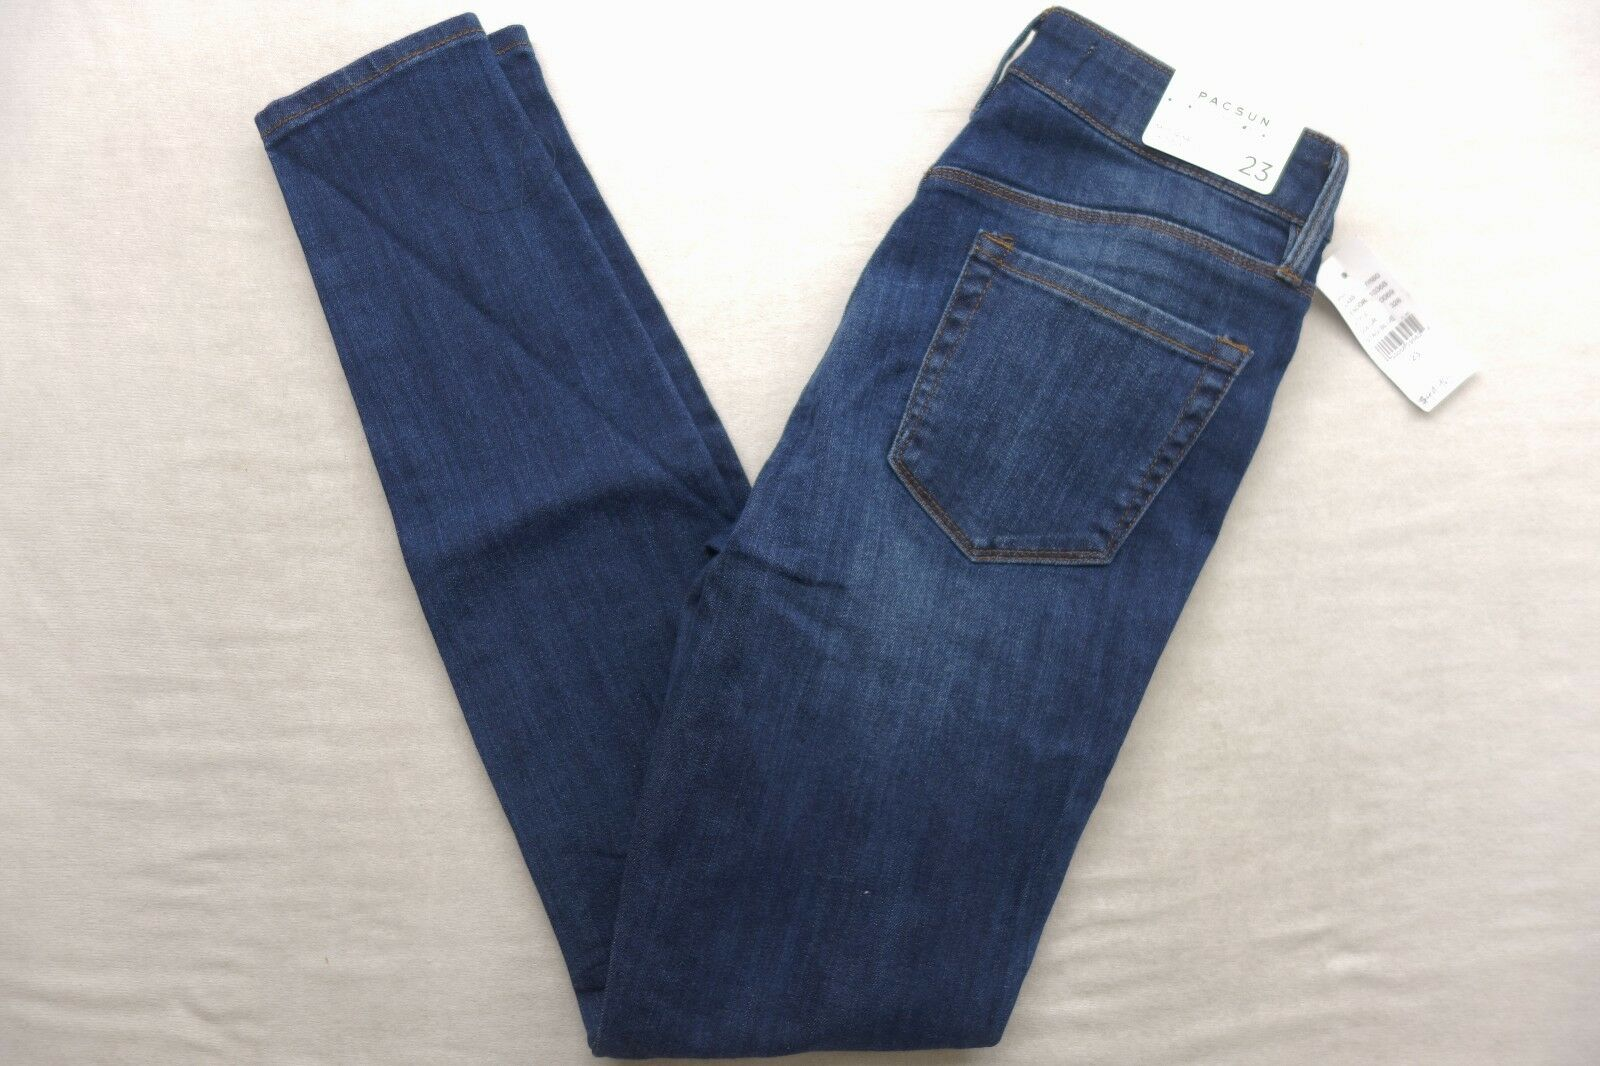 New Womens Pacsun Dark bluee Wash Mid Rise Skinniest Ankle Denim Jeans Sz 23 x 30